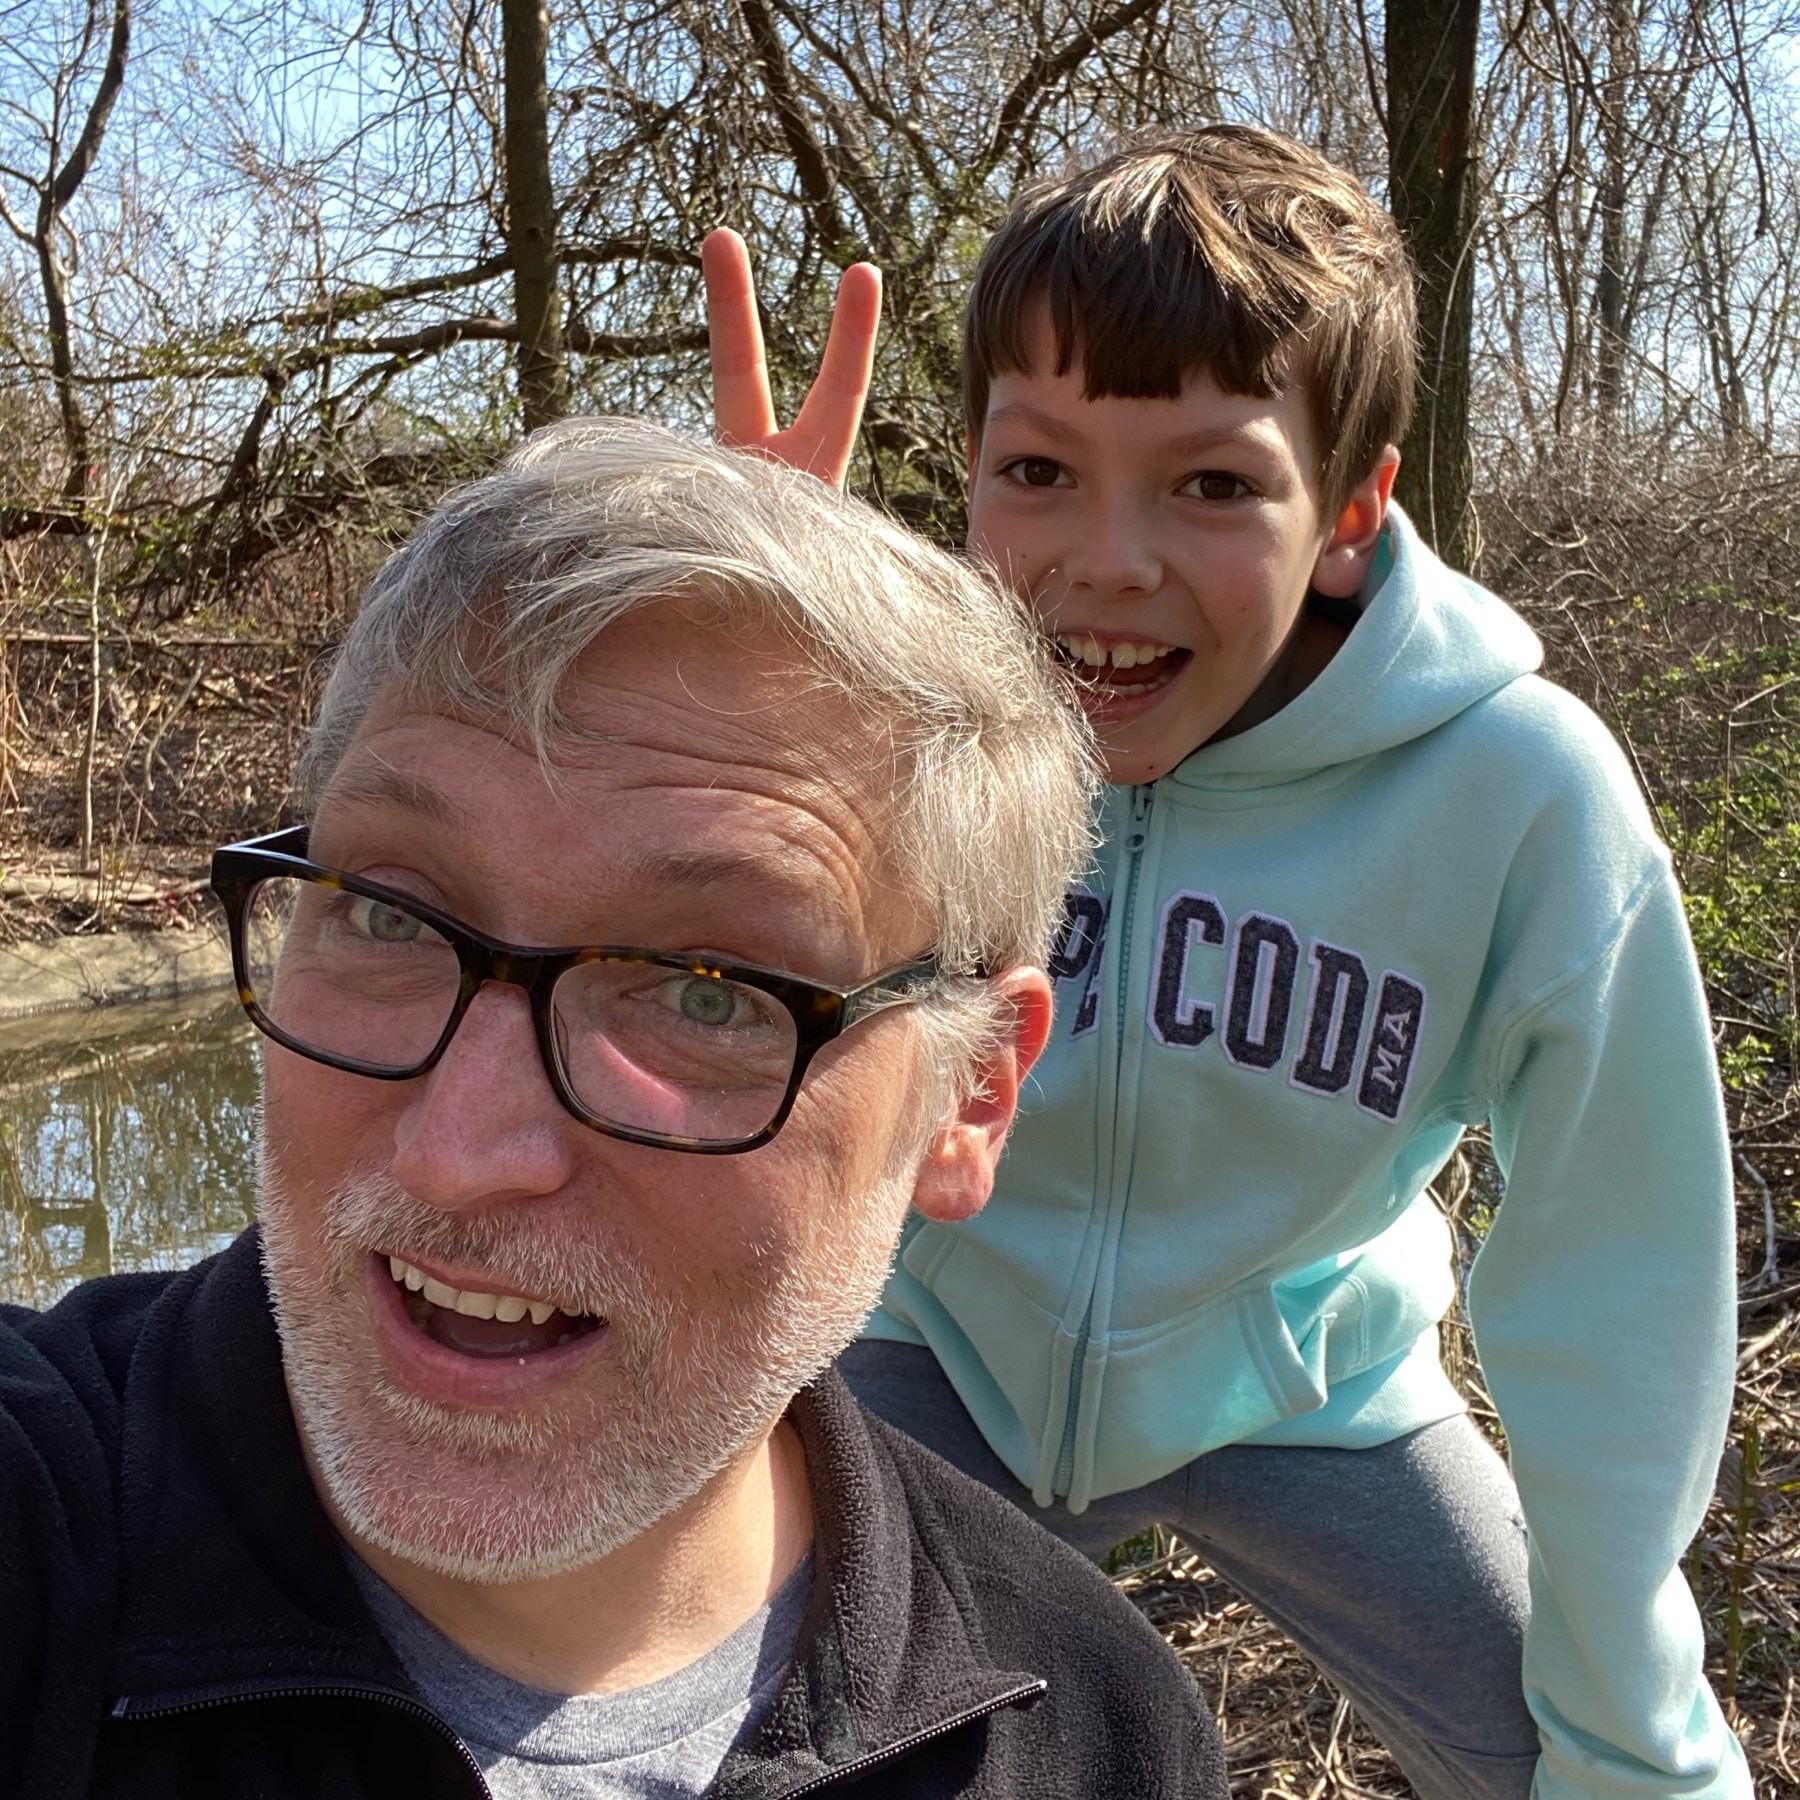 Self portrait with one boy giving me bunny ears